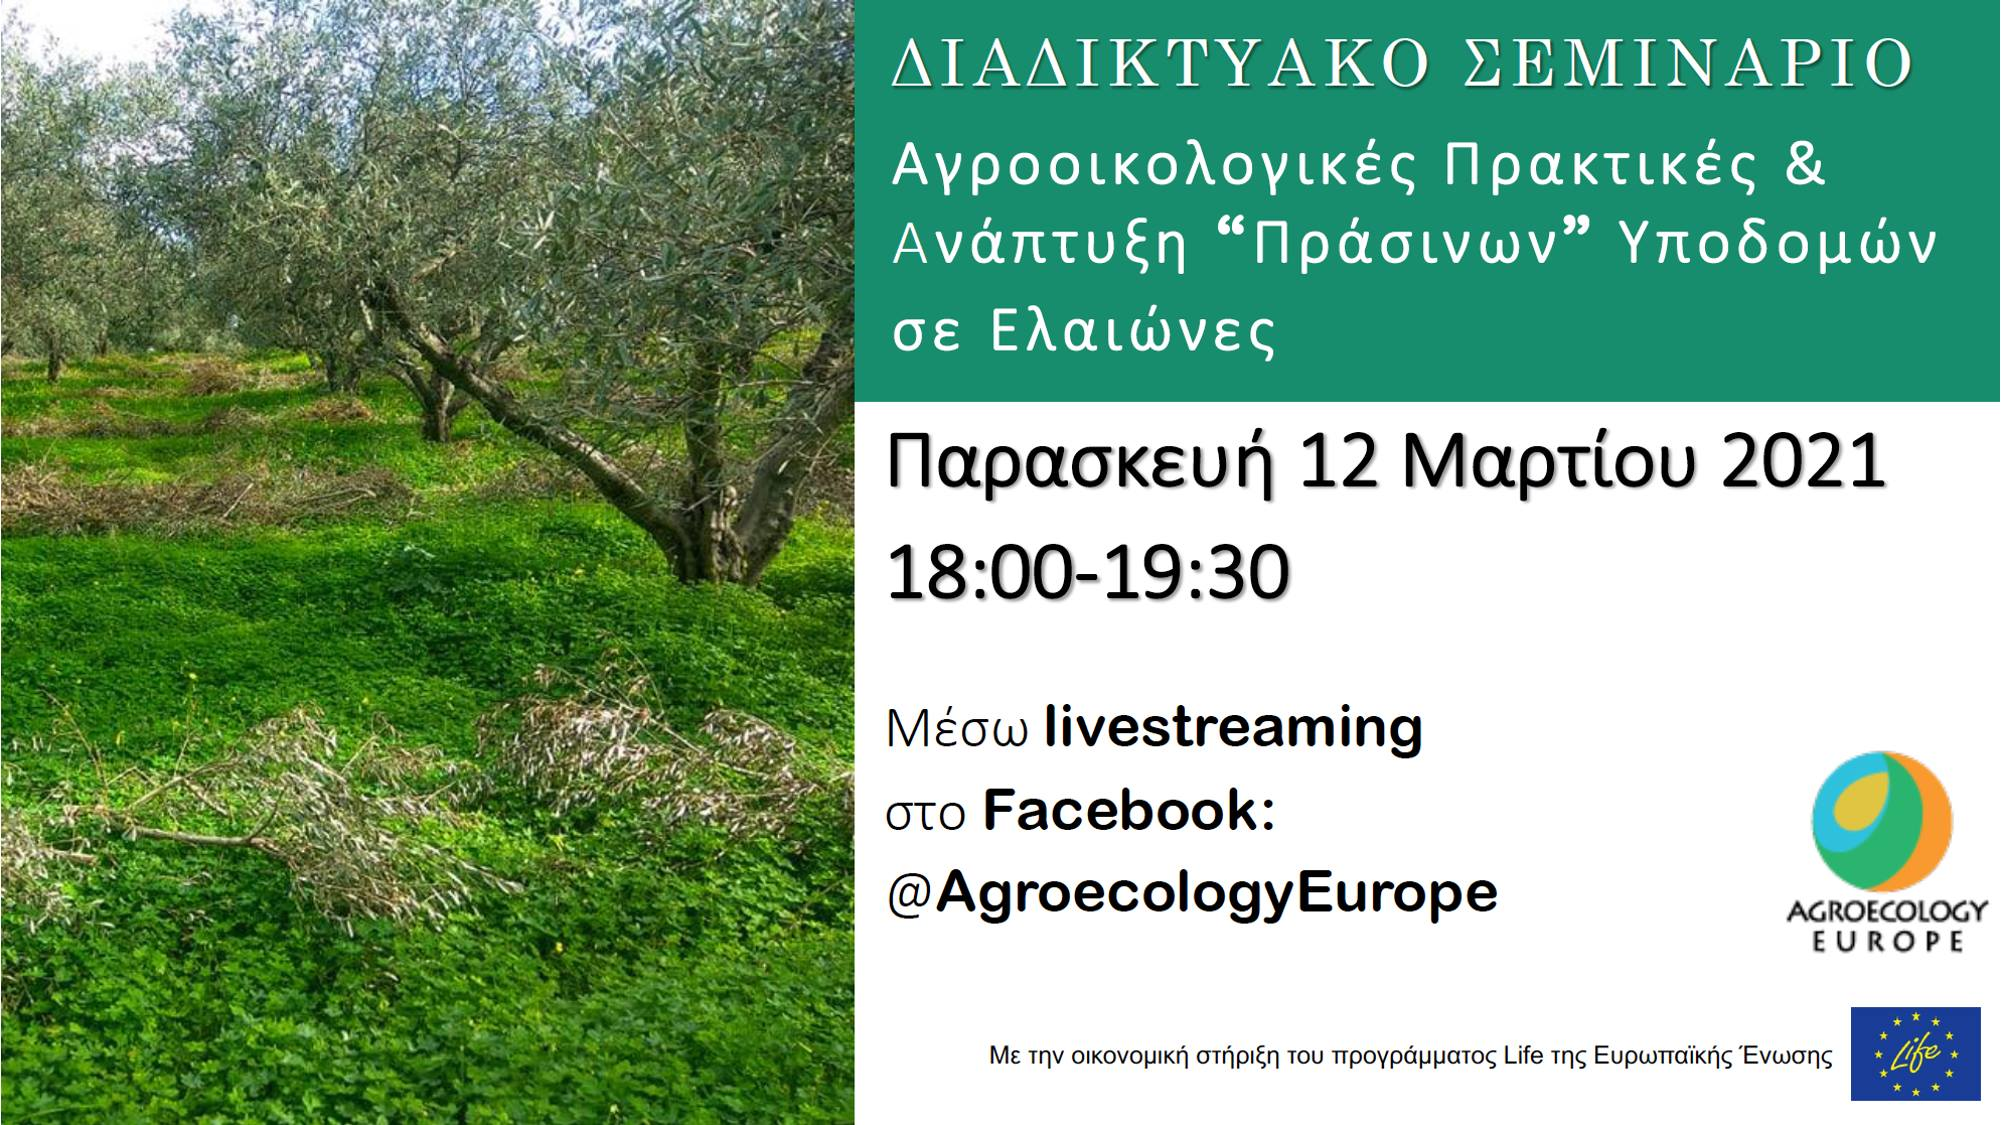 """AEEU Webinar on """"Agroecological practices and development of Ecological Infrastructure in Olive orchards"""" held on Friday 12th of March 2021 in Greek on our Facebook page!"""